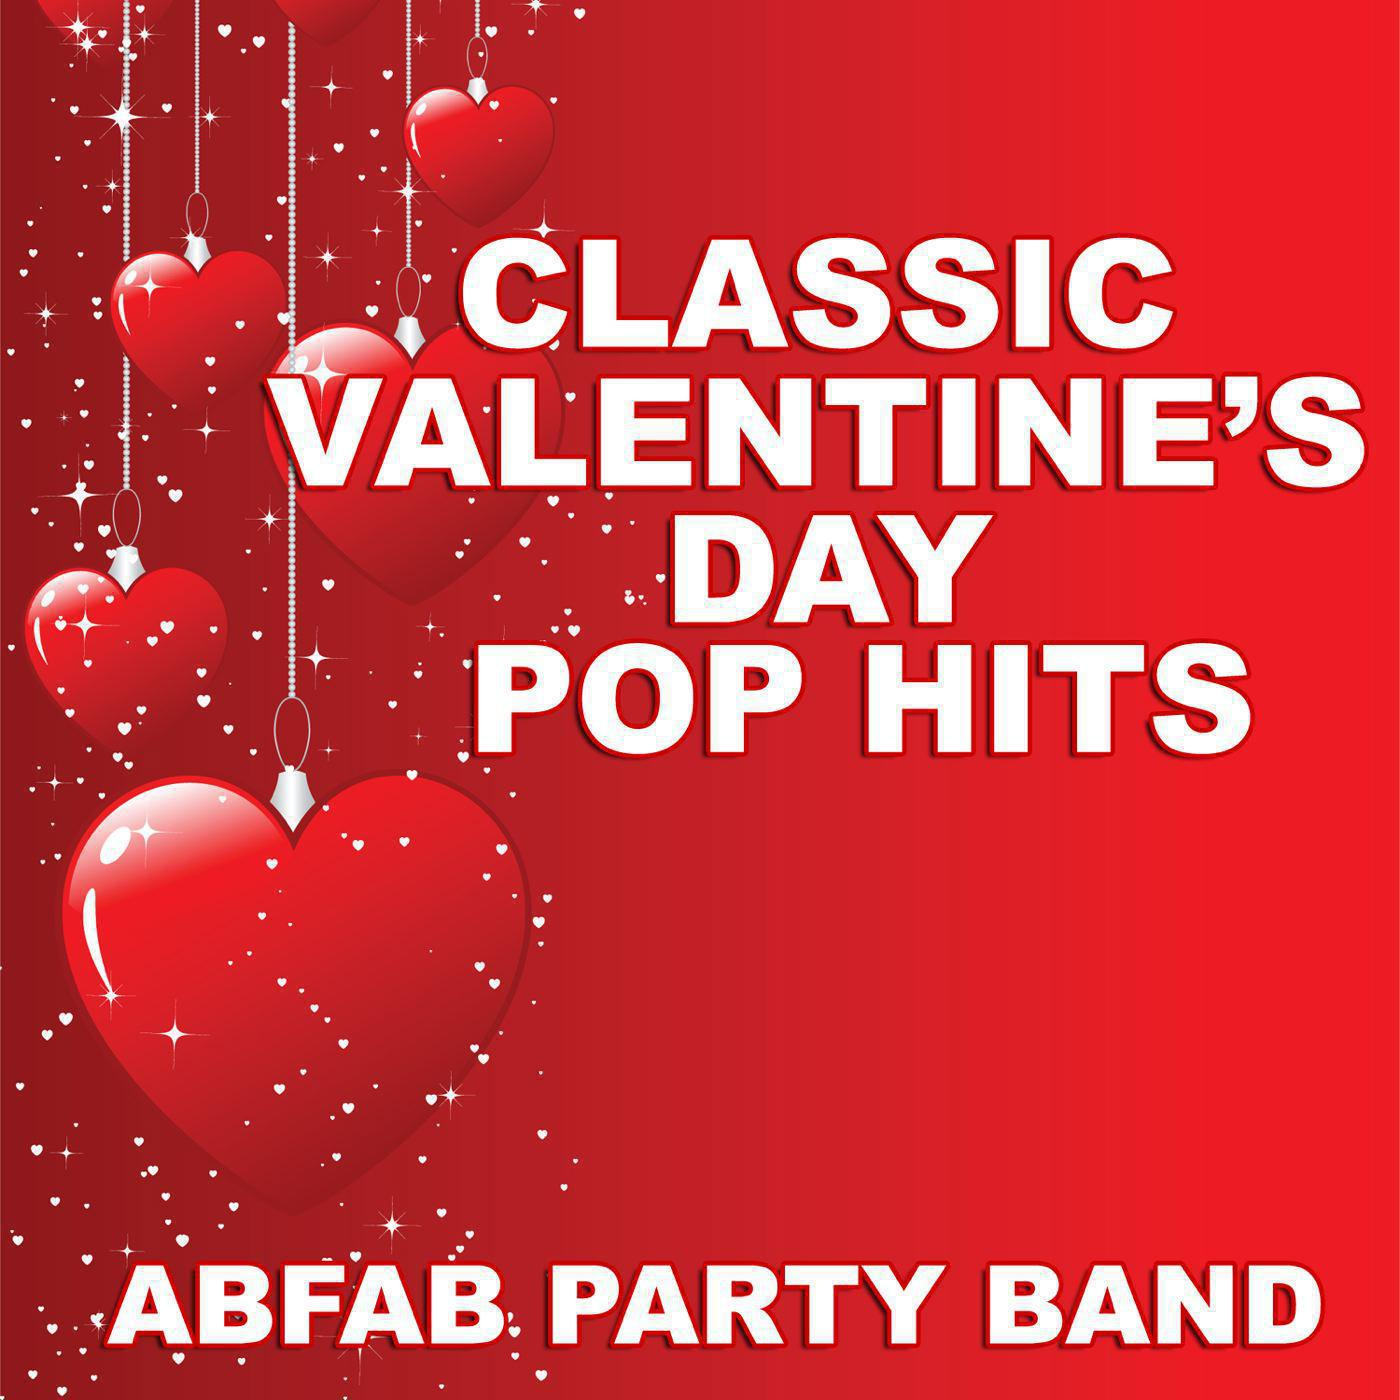 Classic Valentine's Day Pop Hits